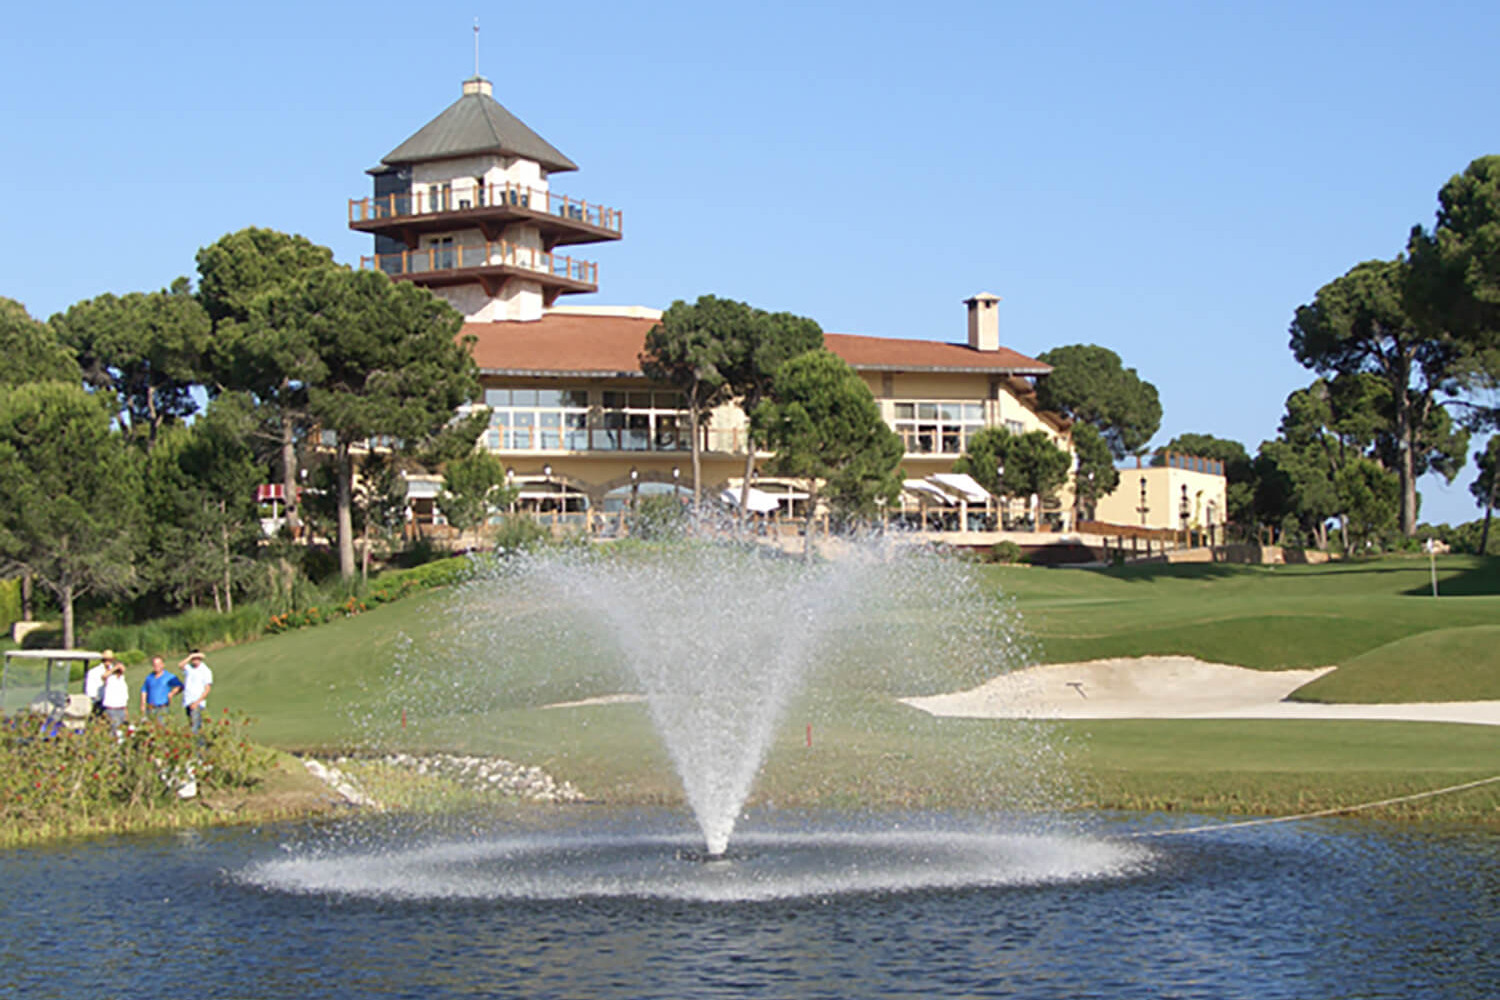 One of Otterbine's Aerating Fountains at a golf course